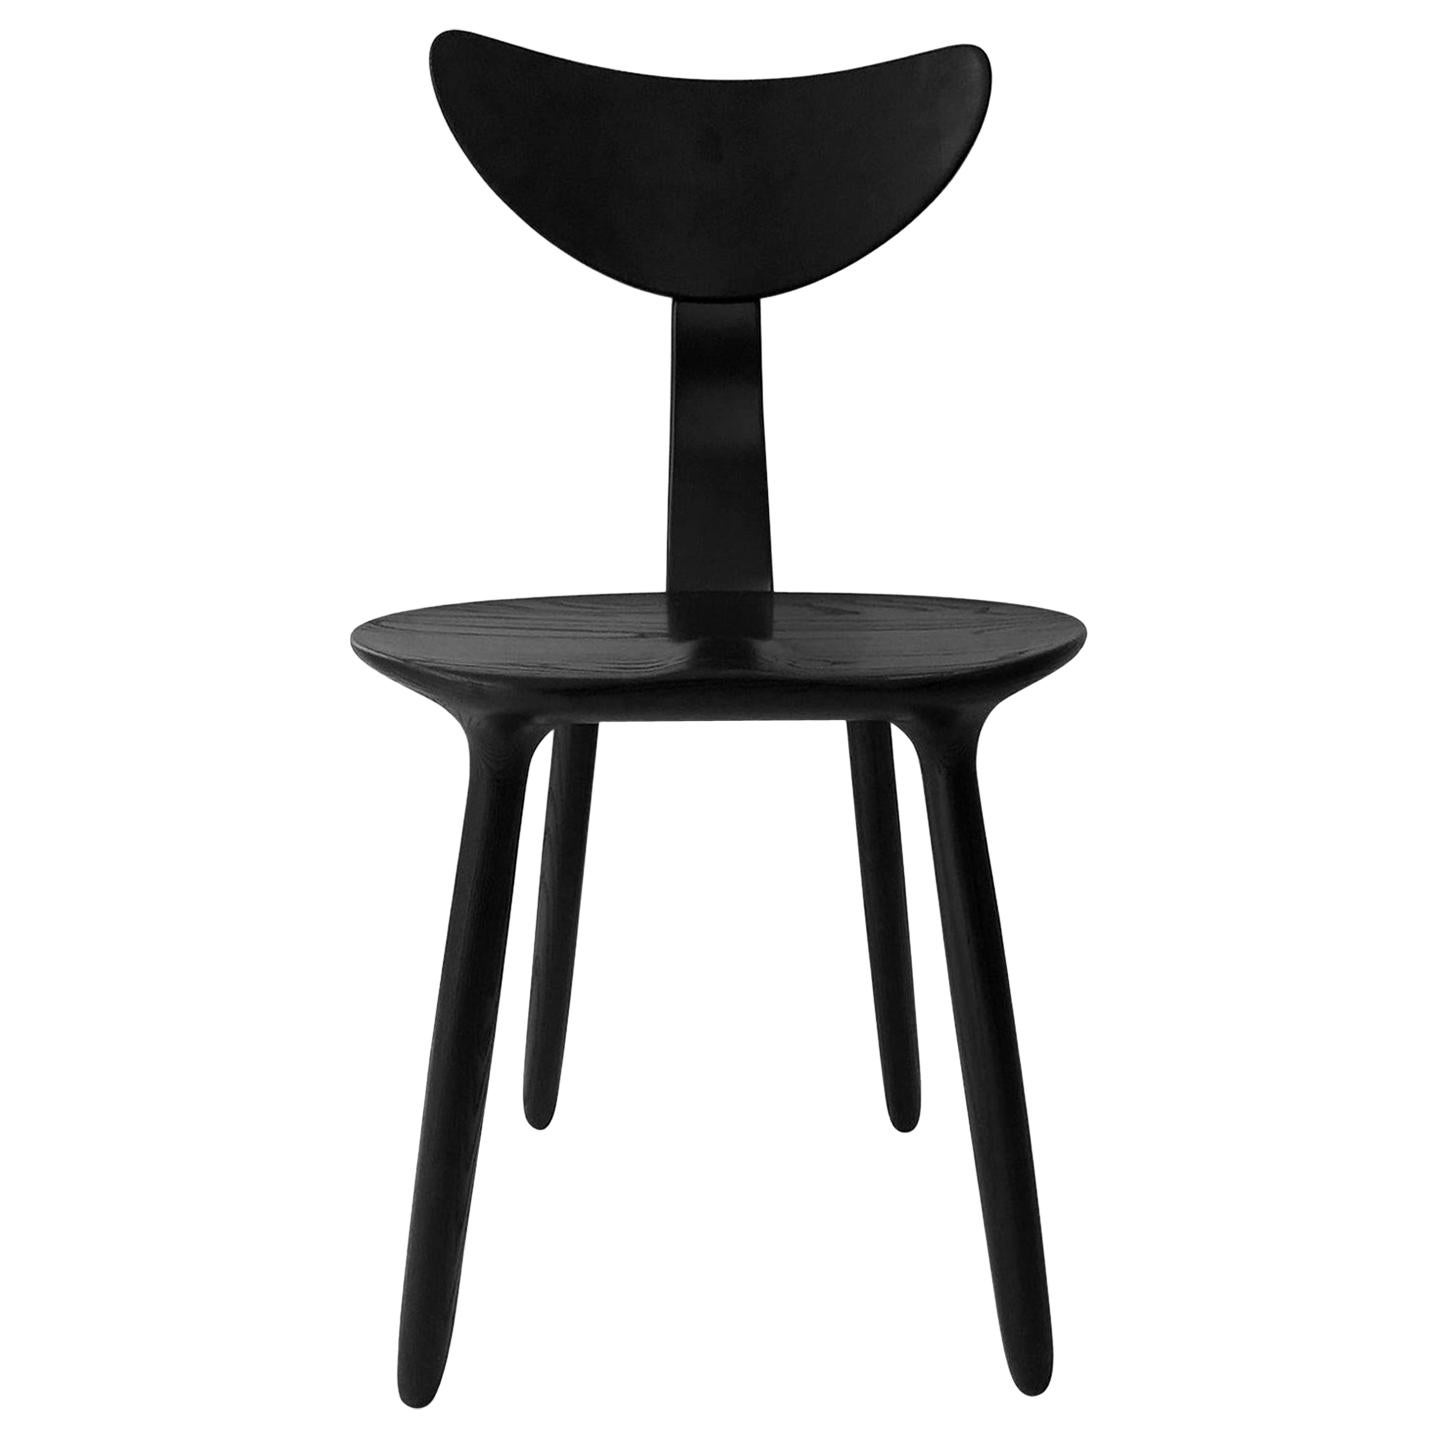 Black Stained Ash Daiku Chair by Victoria Magniant, Galerie V